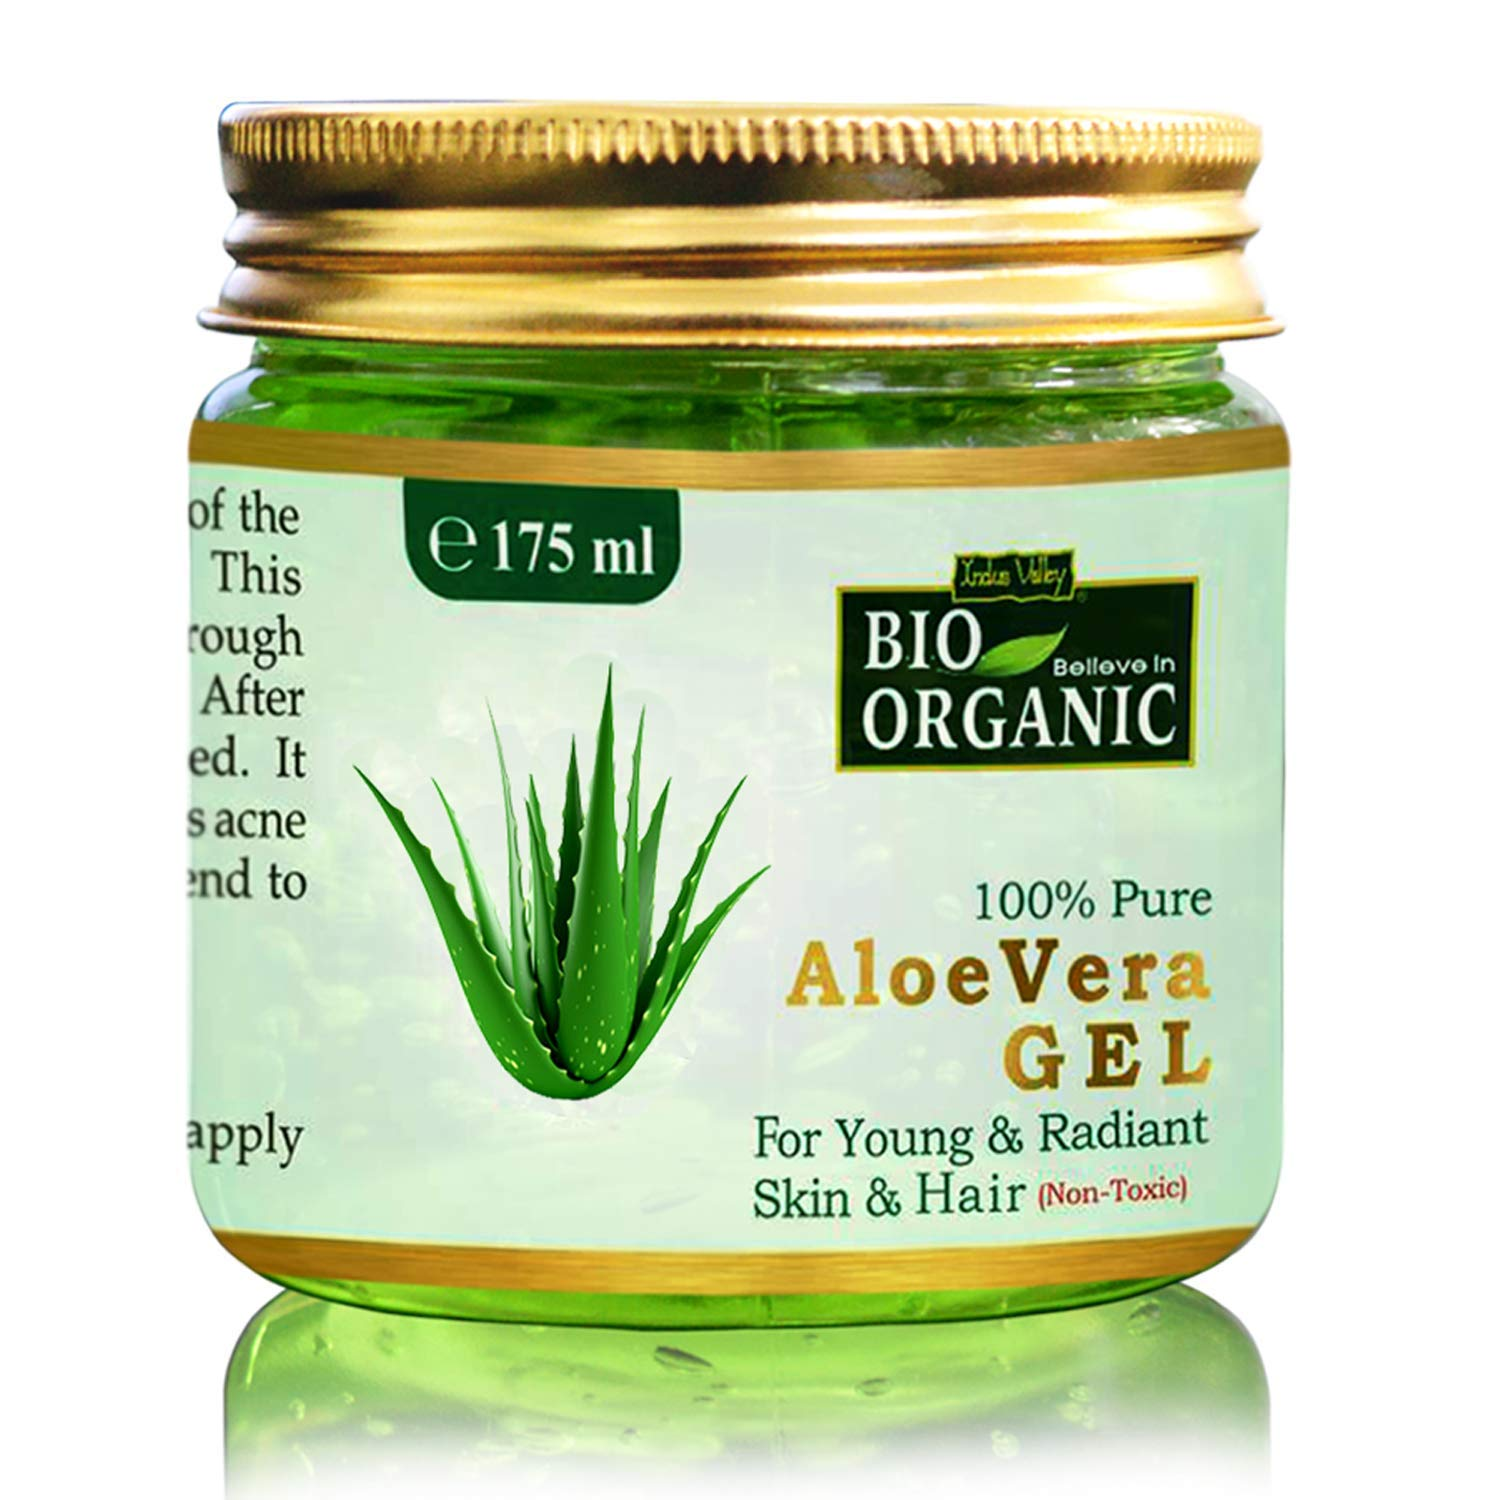 Indus Valley Bio Organic 100% Pure Aloe Vera Gel